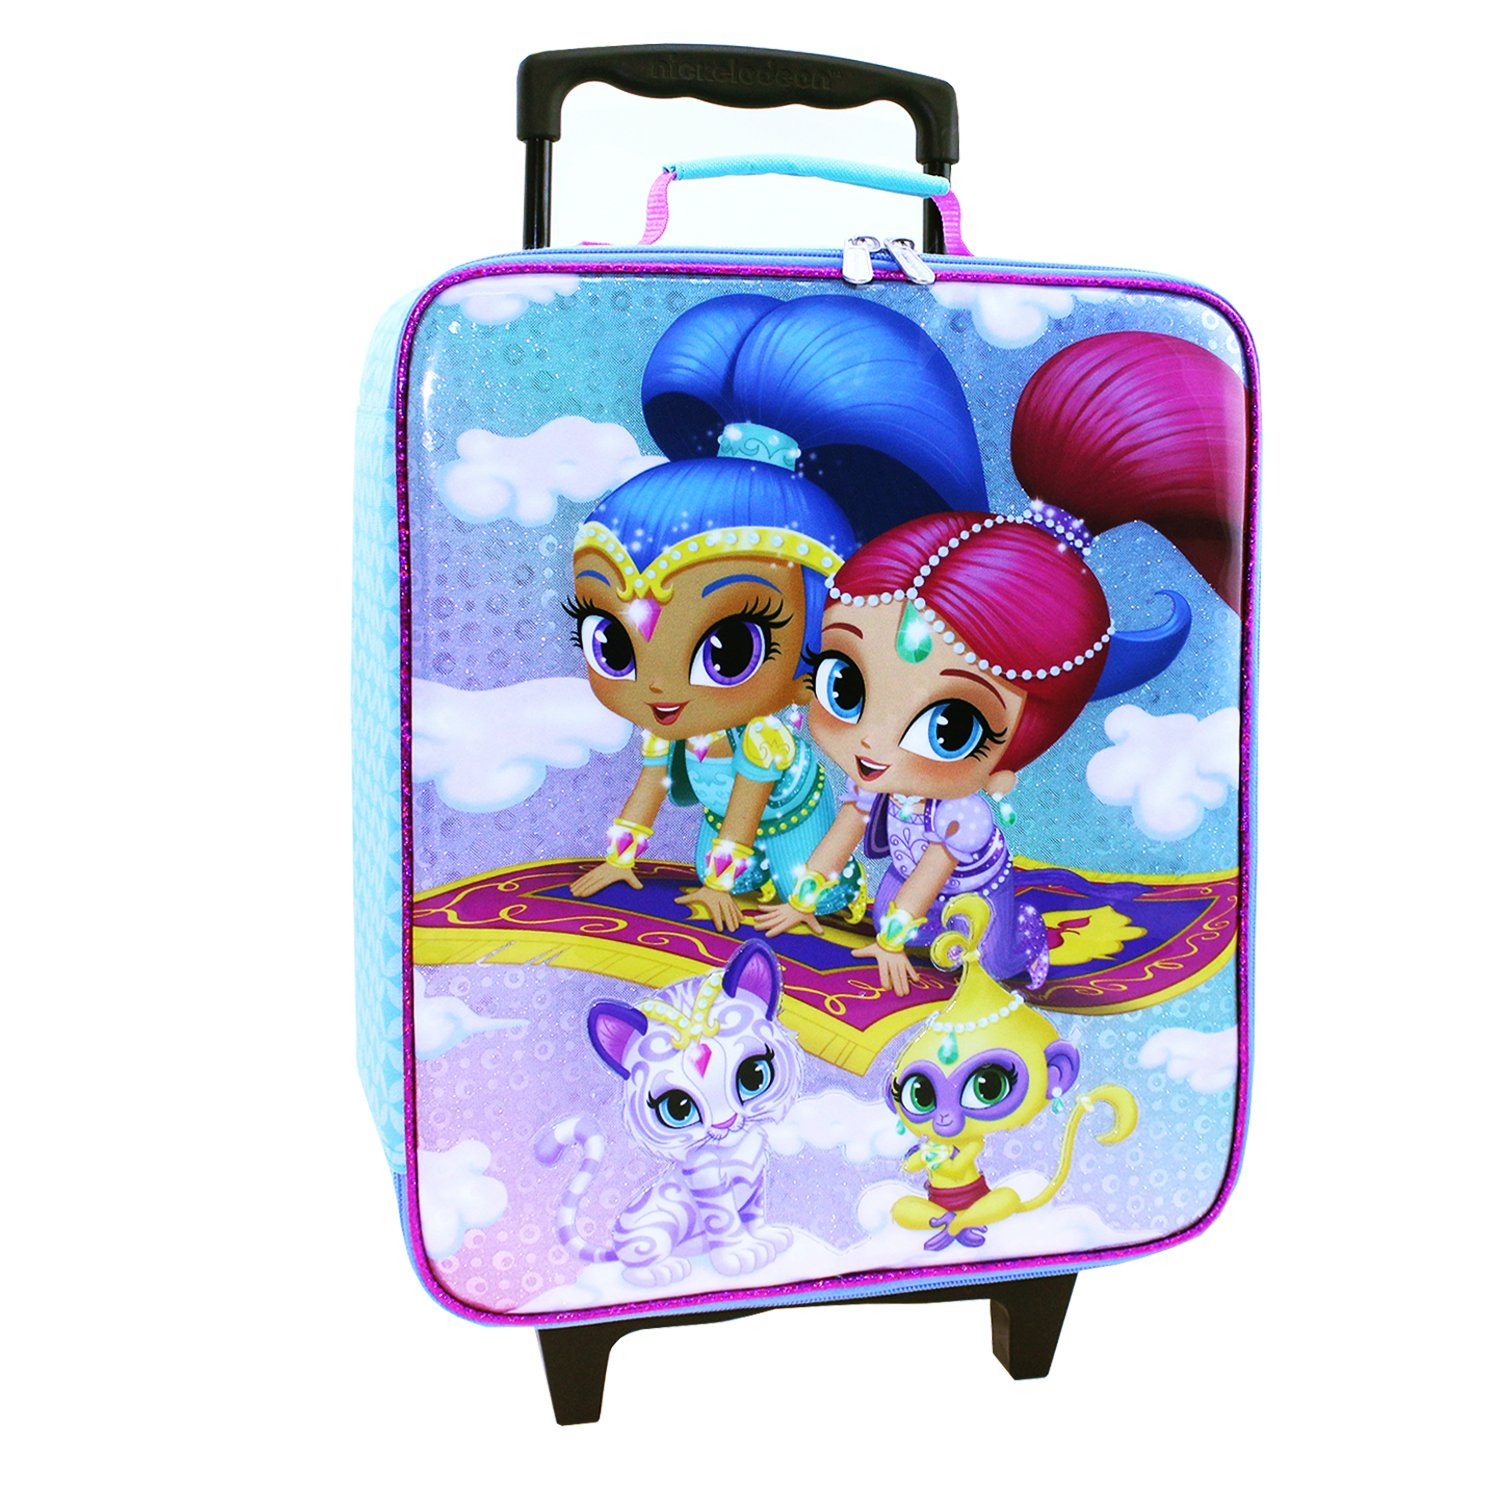 Nickelodeon Girls' Shimmer and Shine Pilot Case, Blue